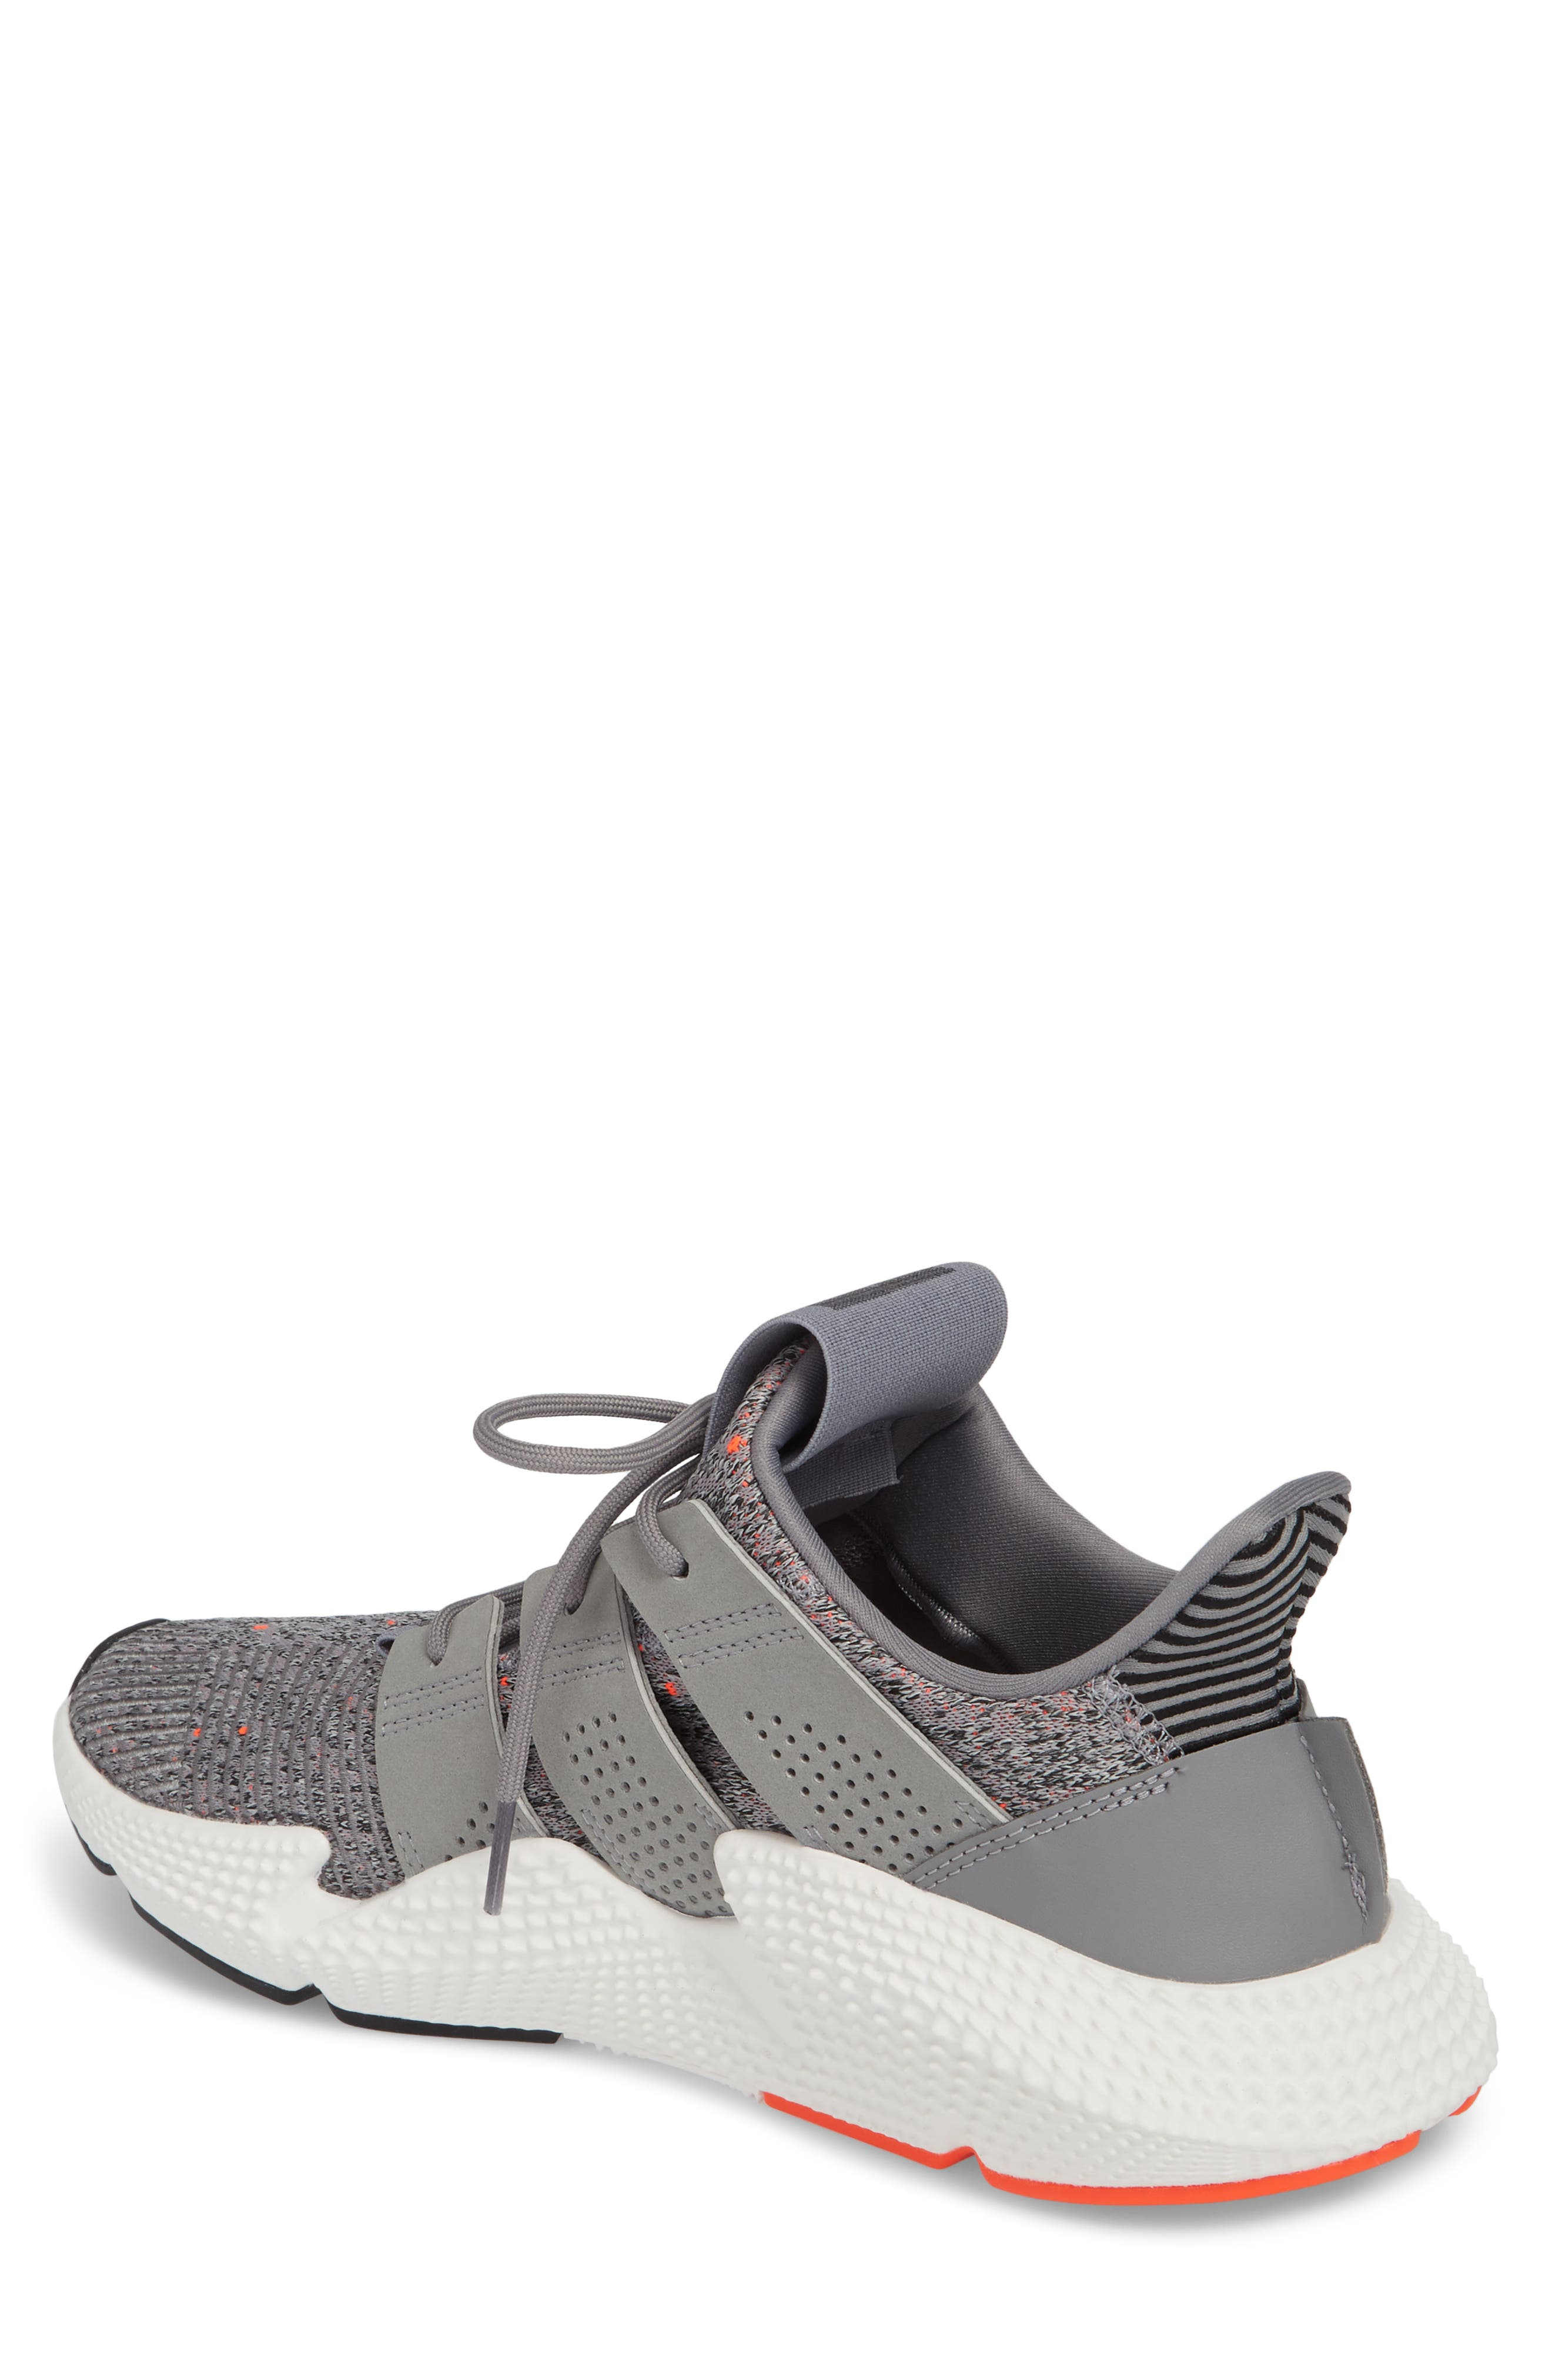 Prophere Sneaker,                             Alternate thumbnail 2, color,                             GREY/ WHITE/ SOLAR RED